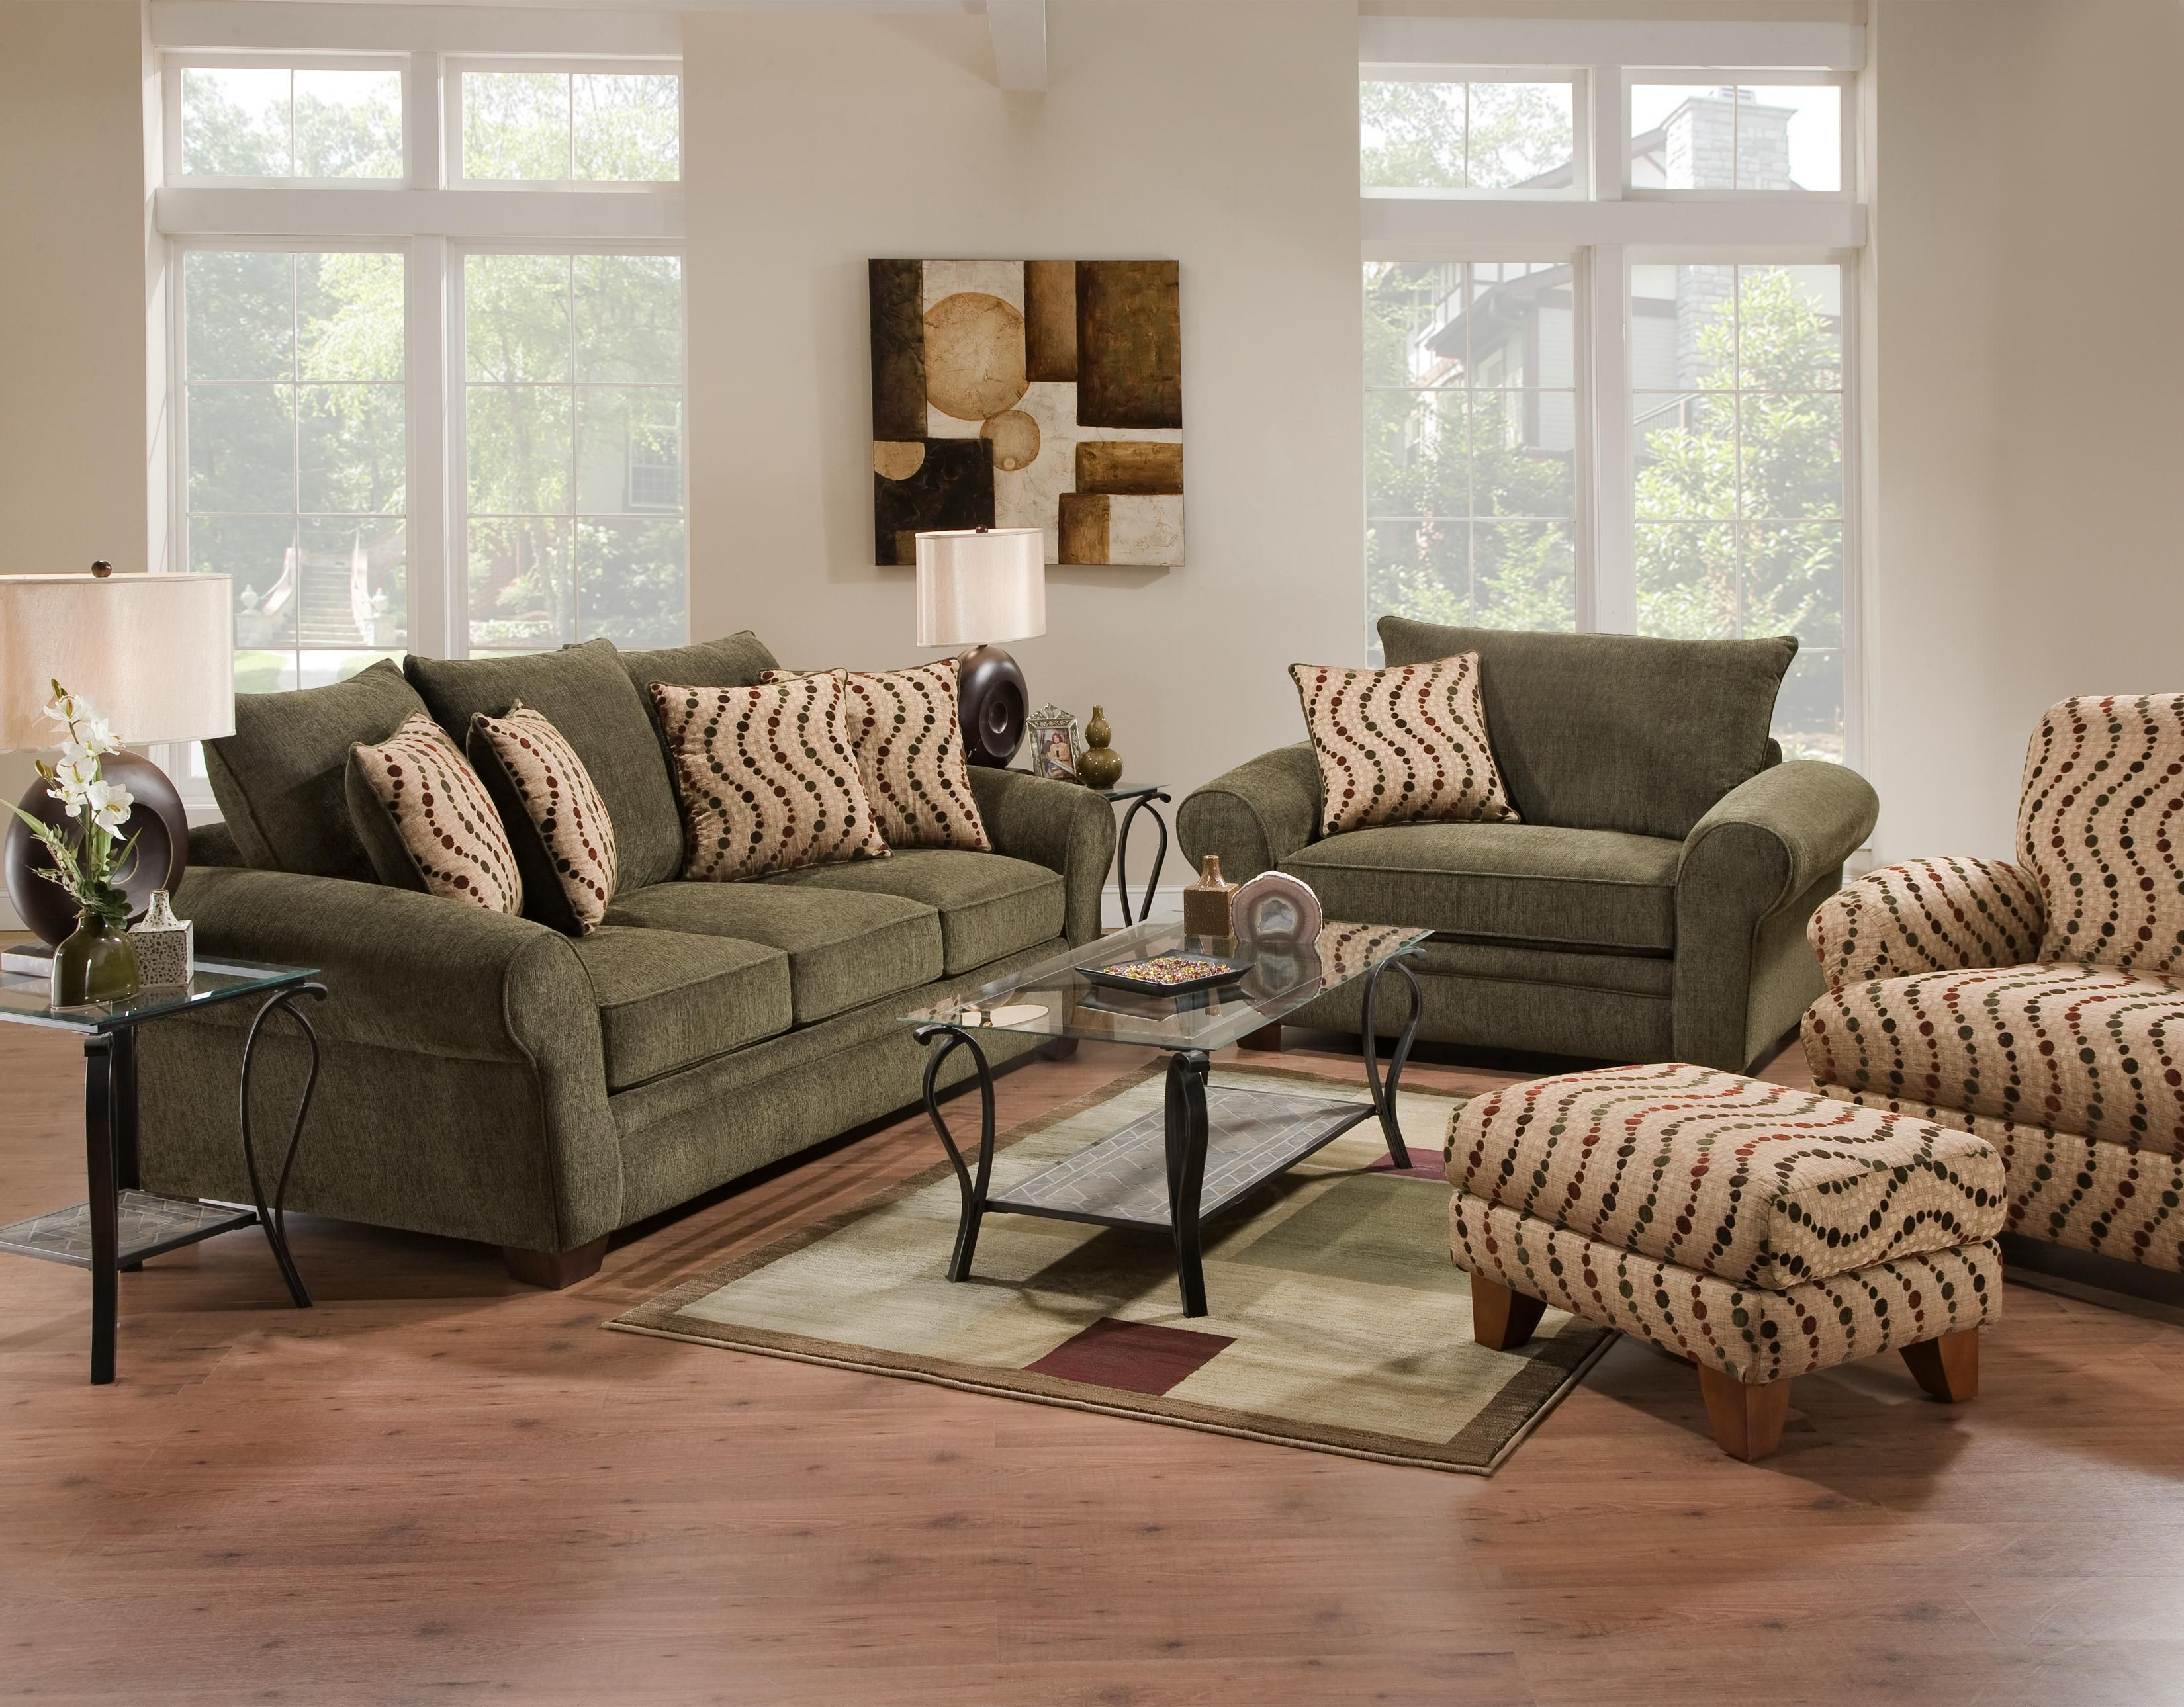 Forest green living room set